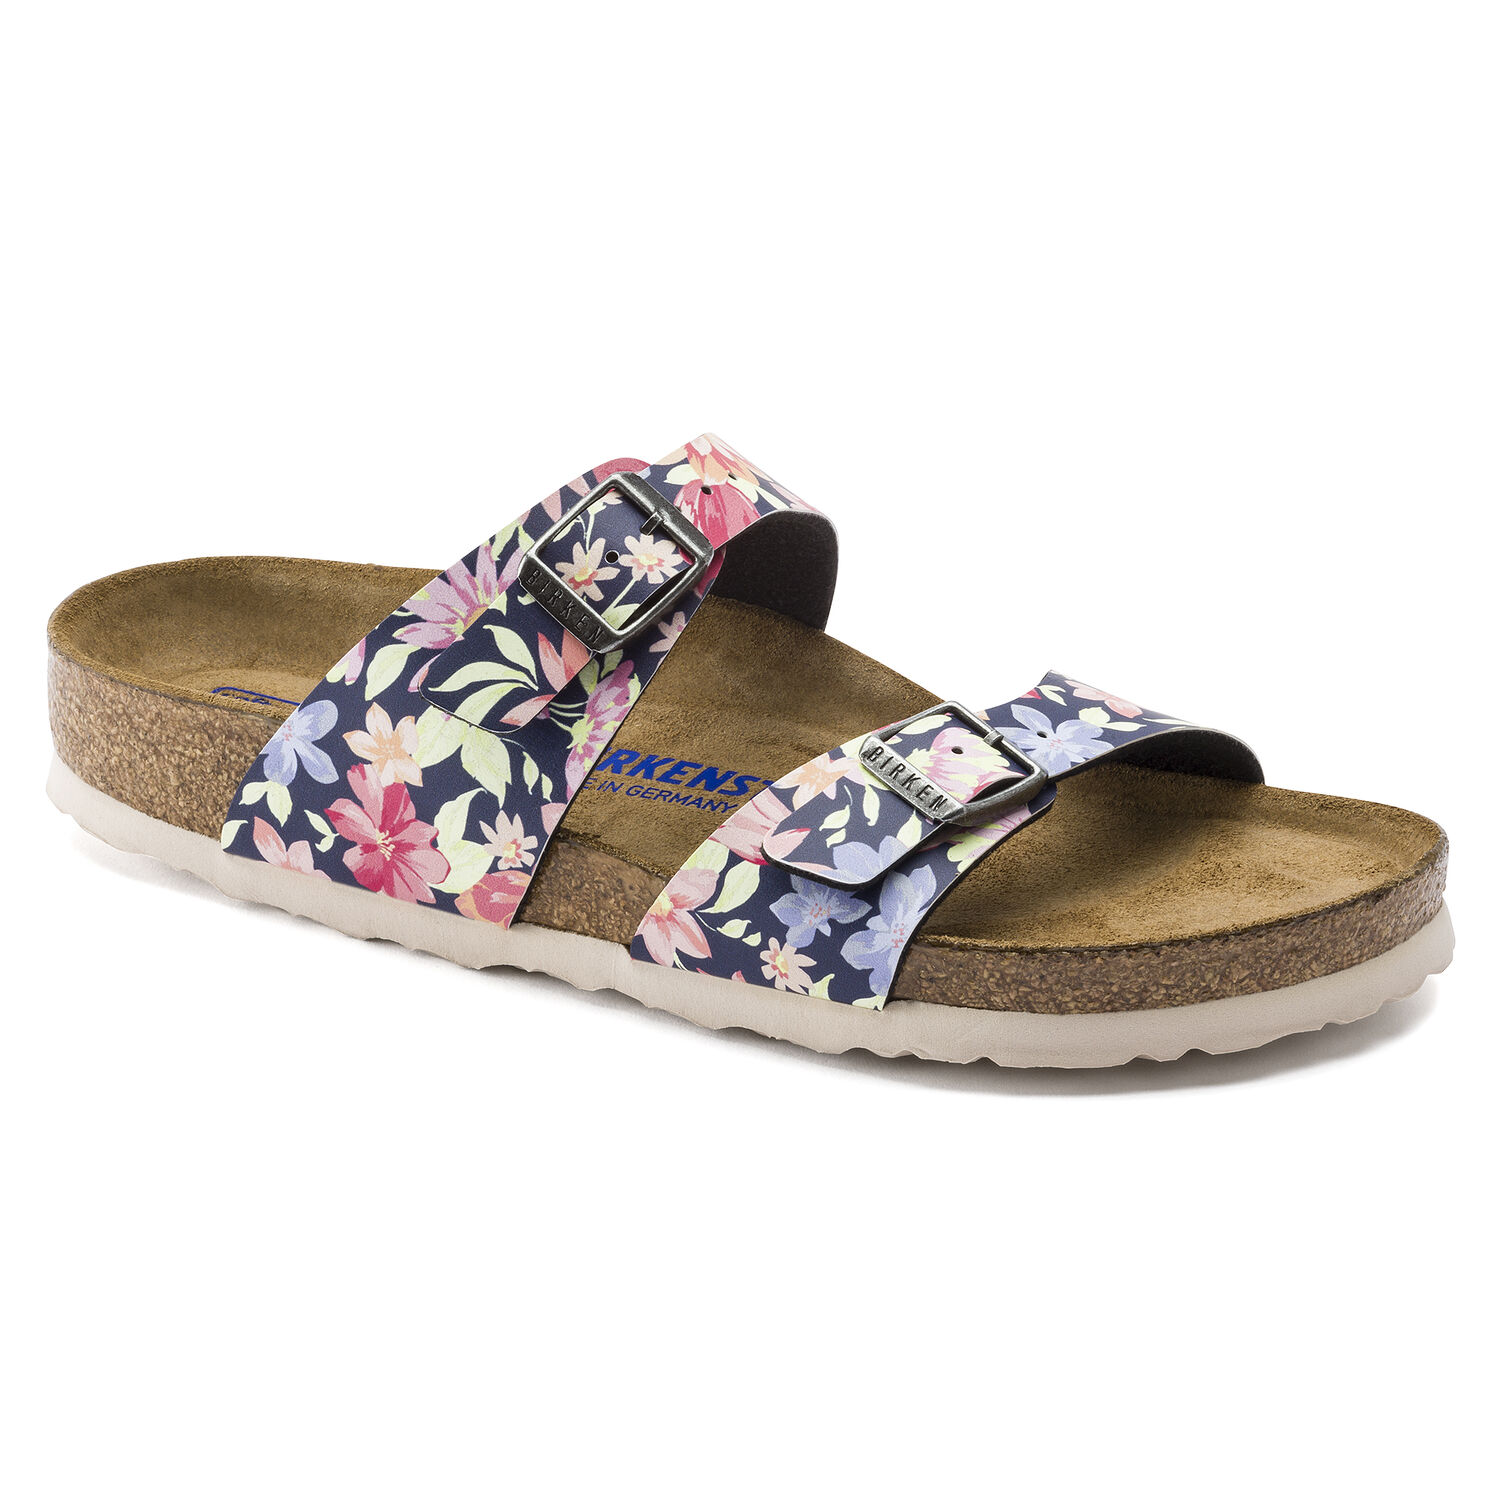 SIDNEY SUPERNATURAL FLOWERS NAVY (BIRKOFLOR)